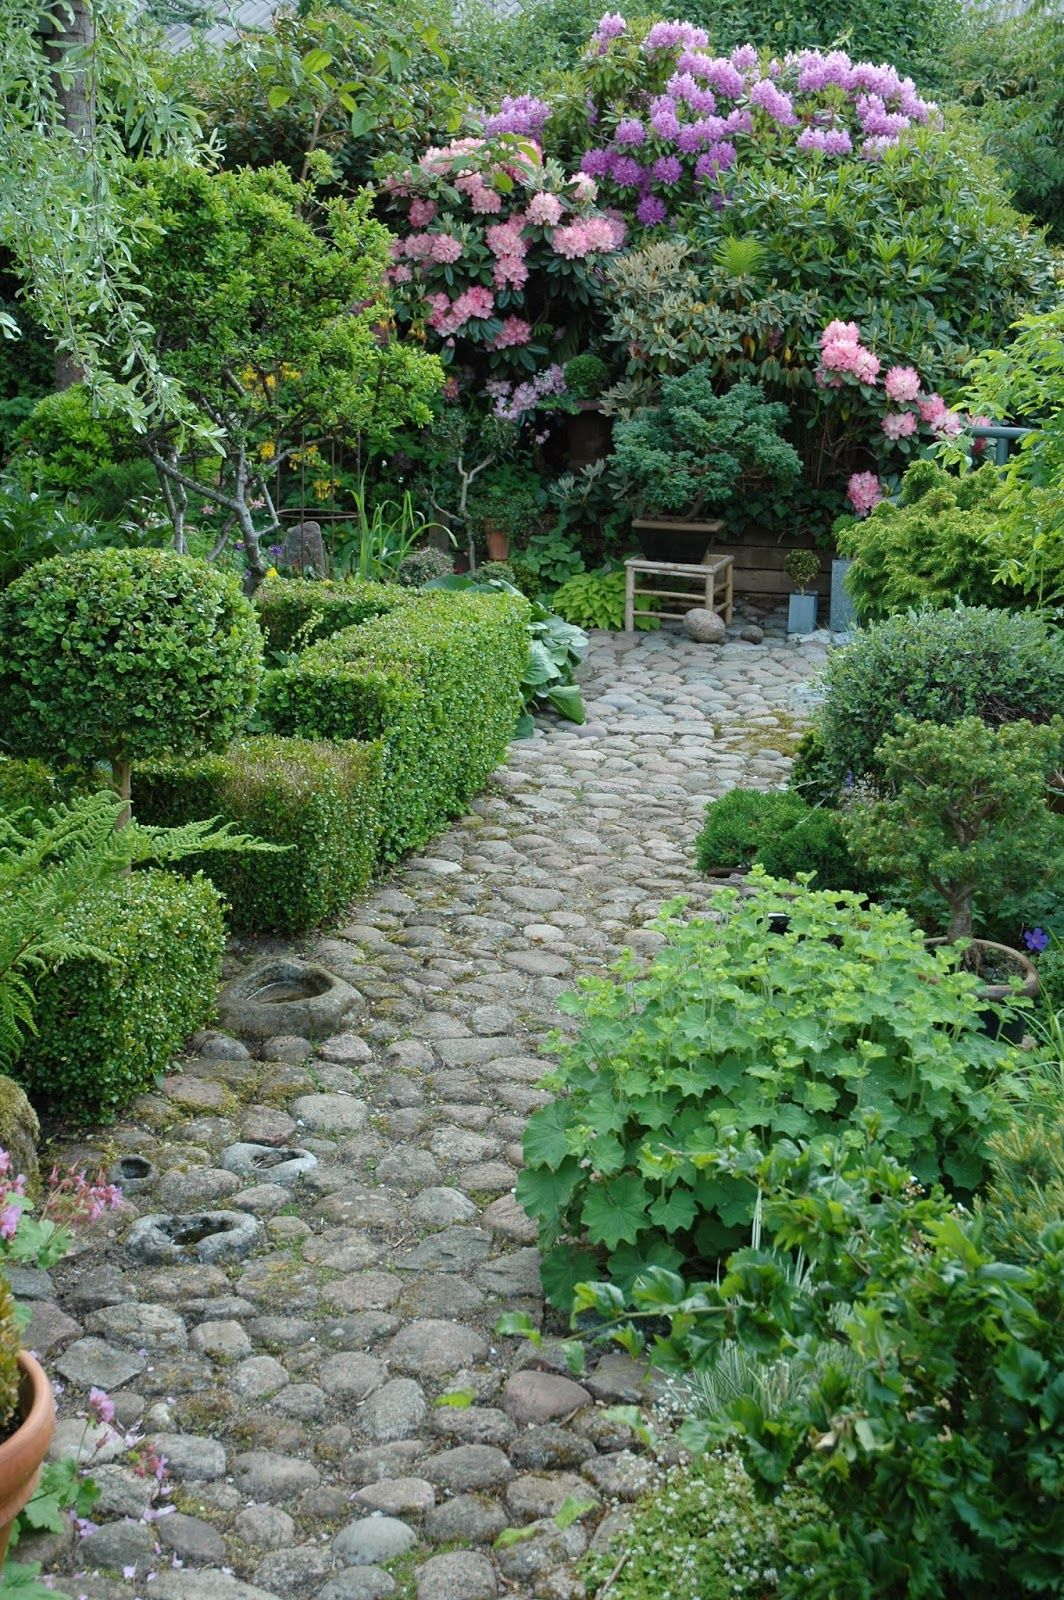 I think we should end one of the garden paths like this with